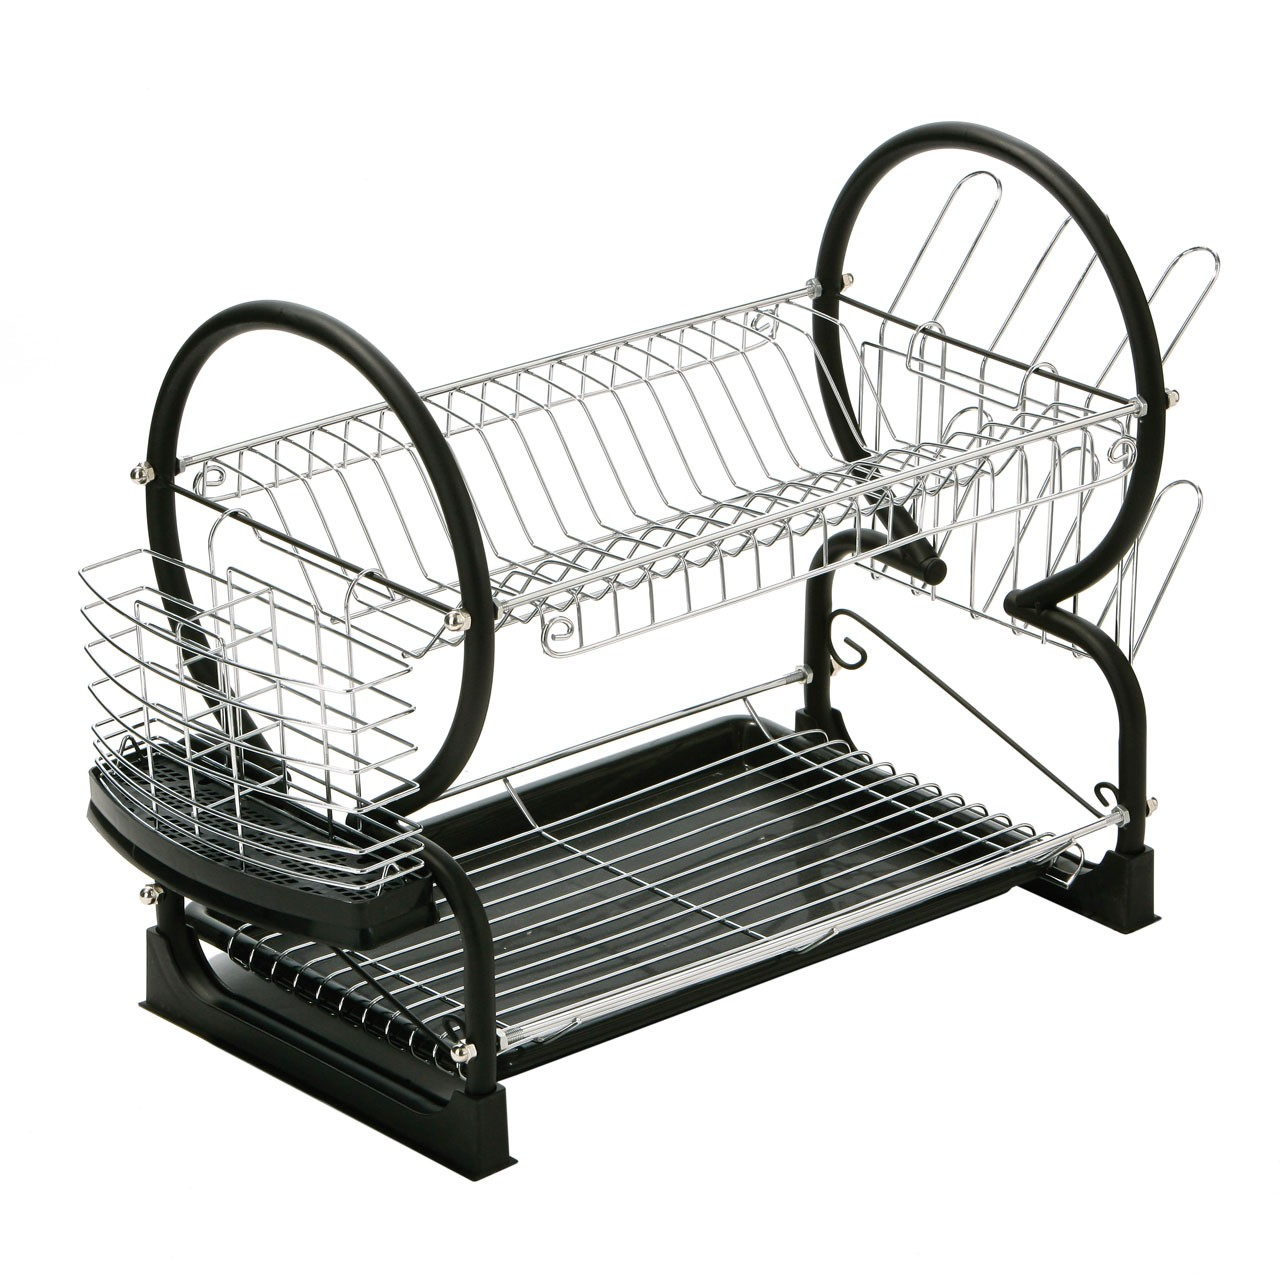 2 Tier Dish Drainer Chrome/Black Enamel Coated Frame